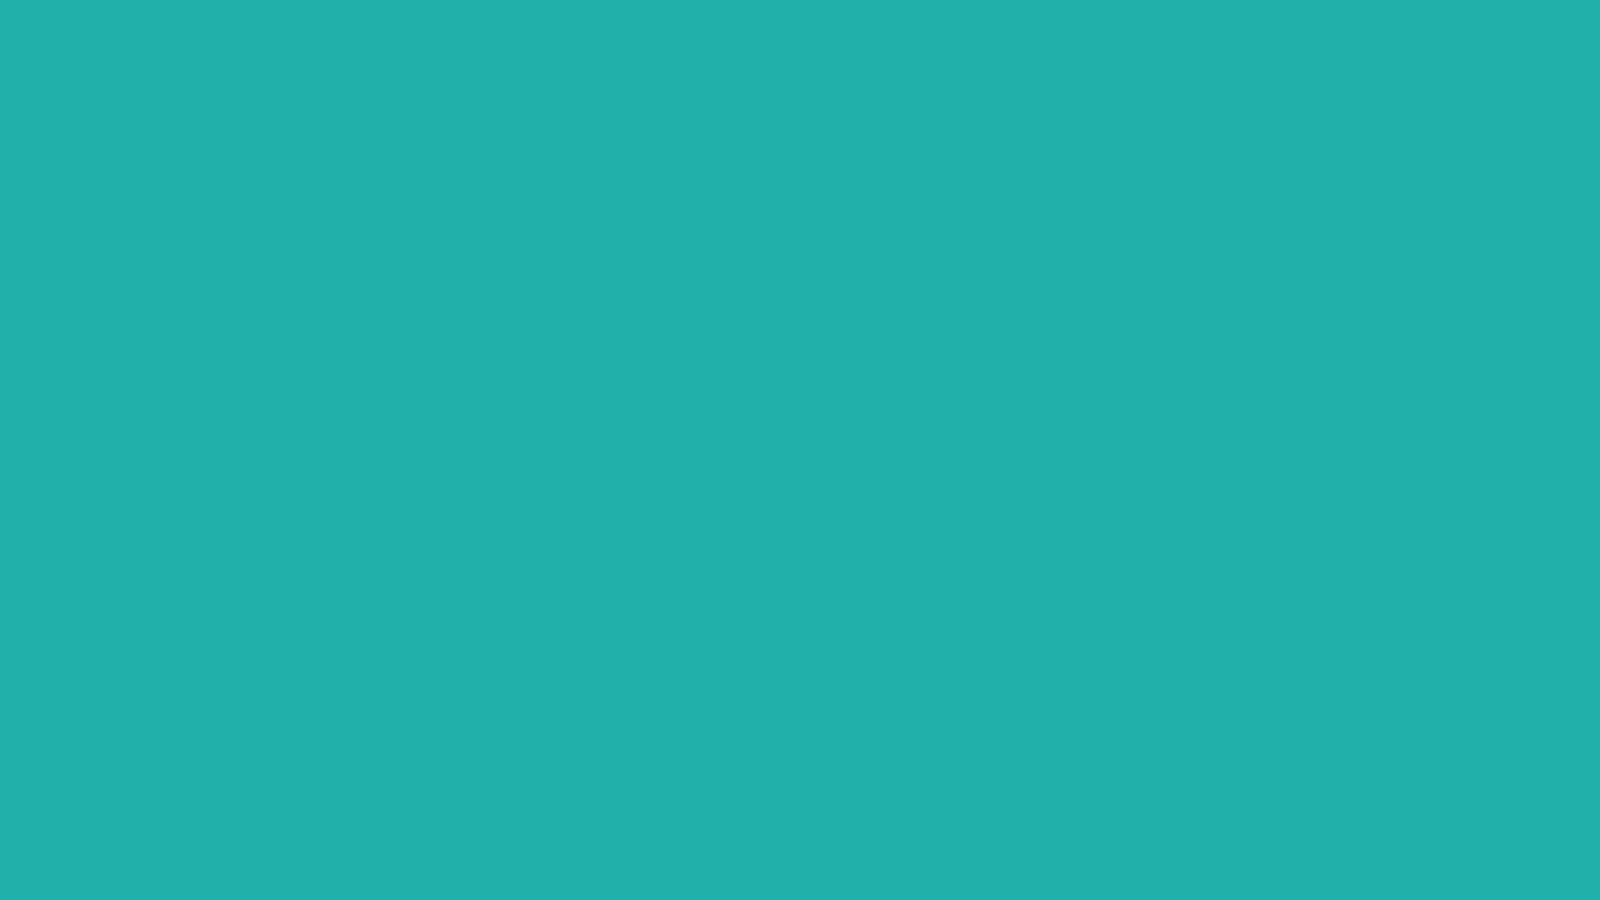 1600x900 Light Sea Green Solid Color Background